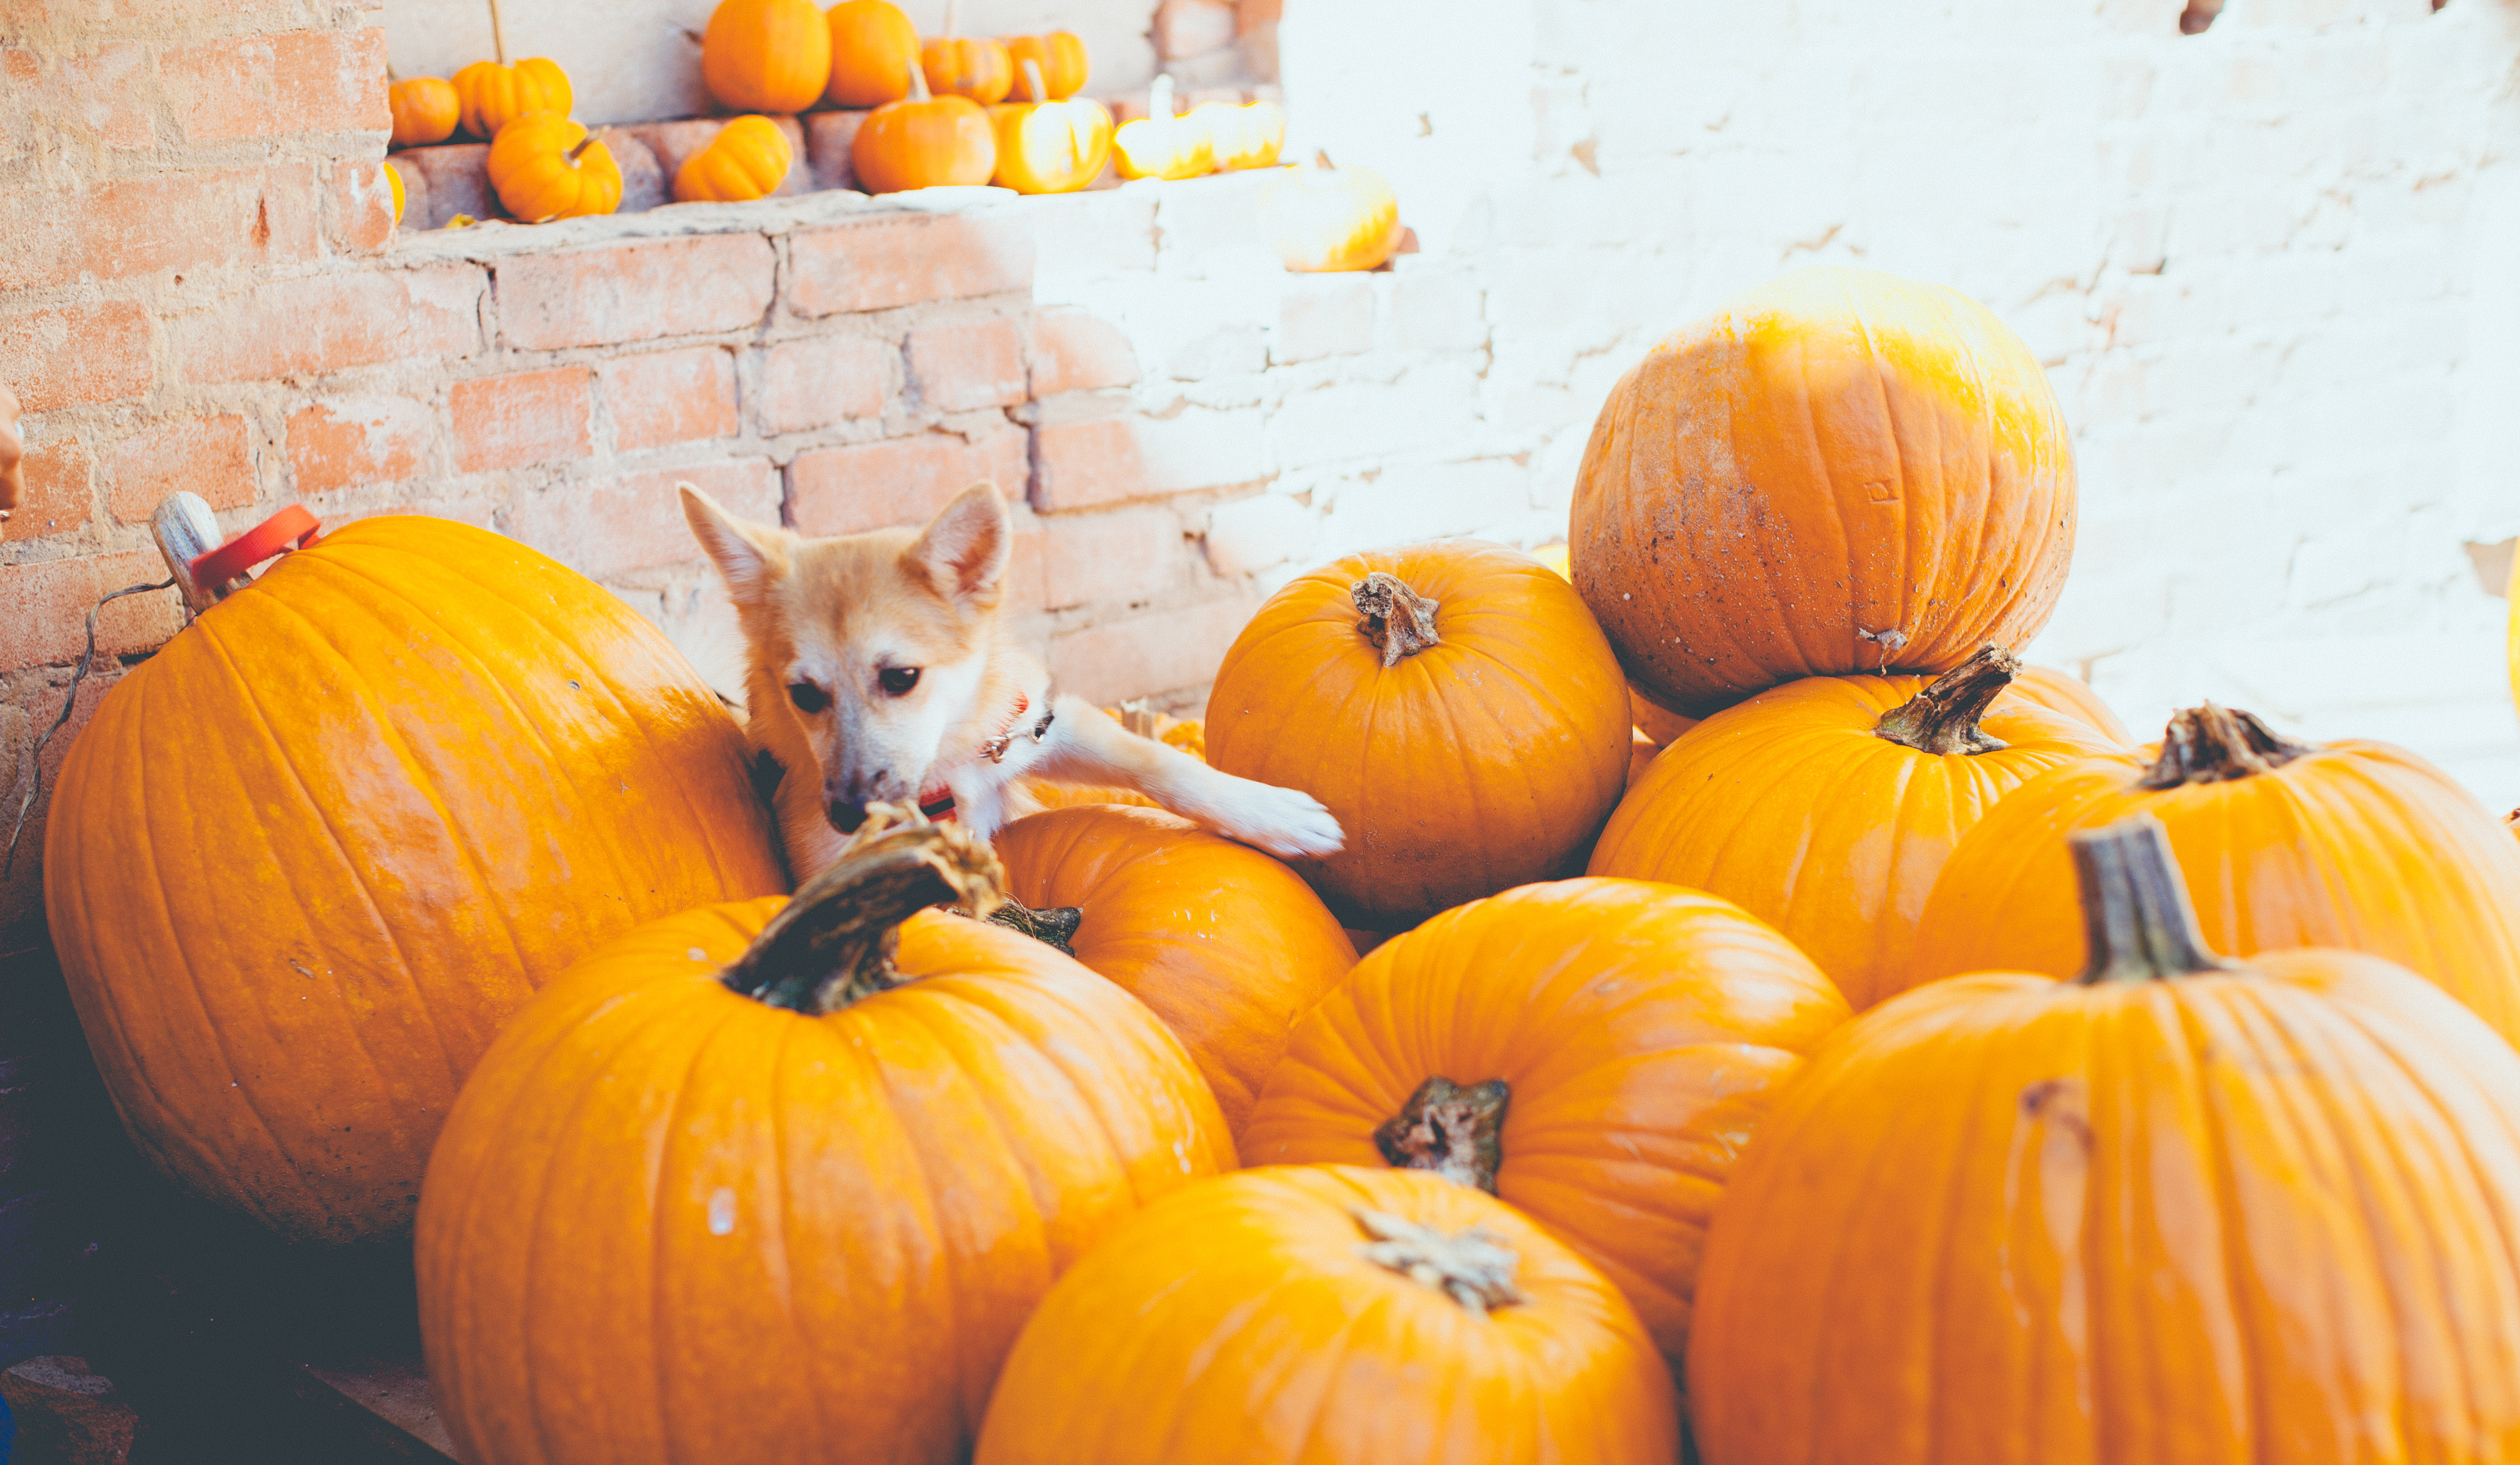 Is Pumpkin Good For Dogs?